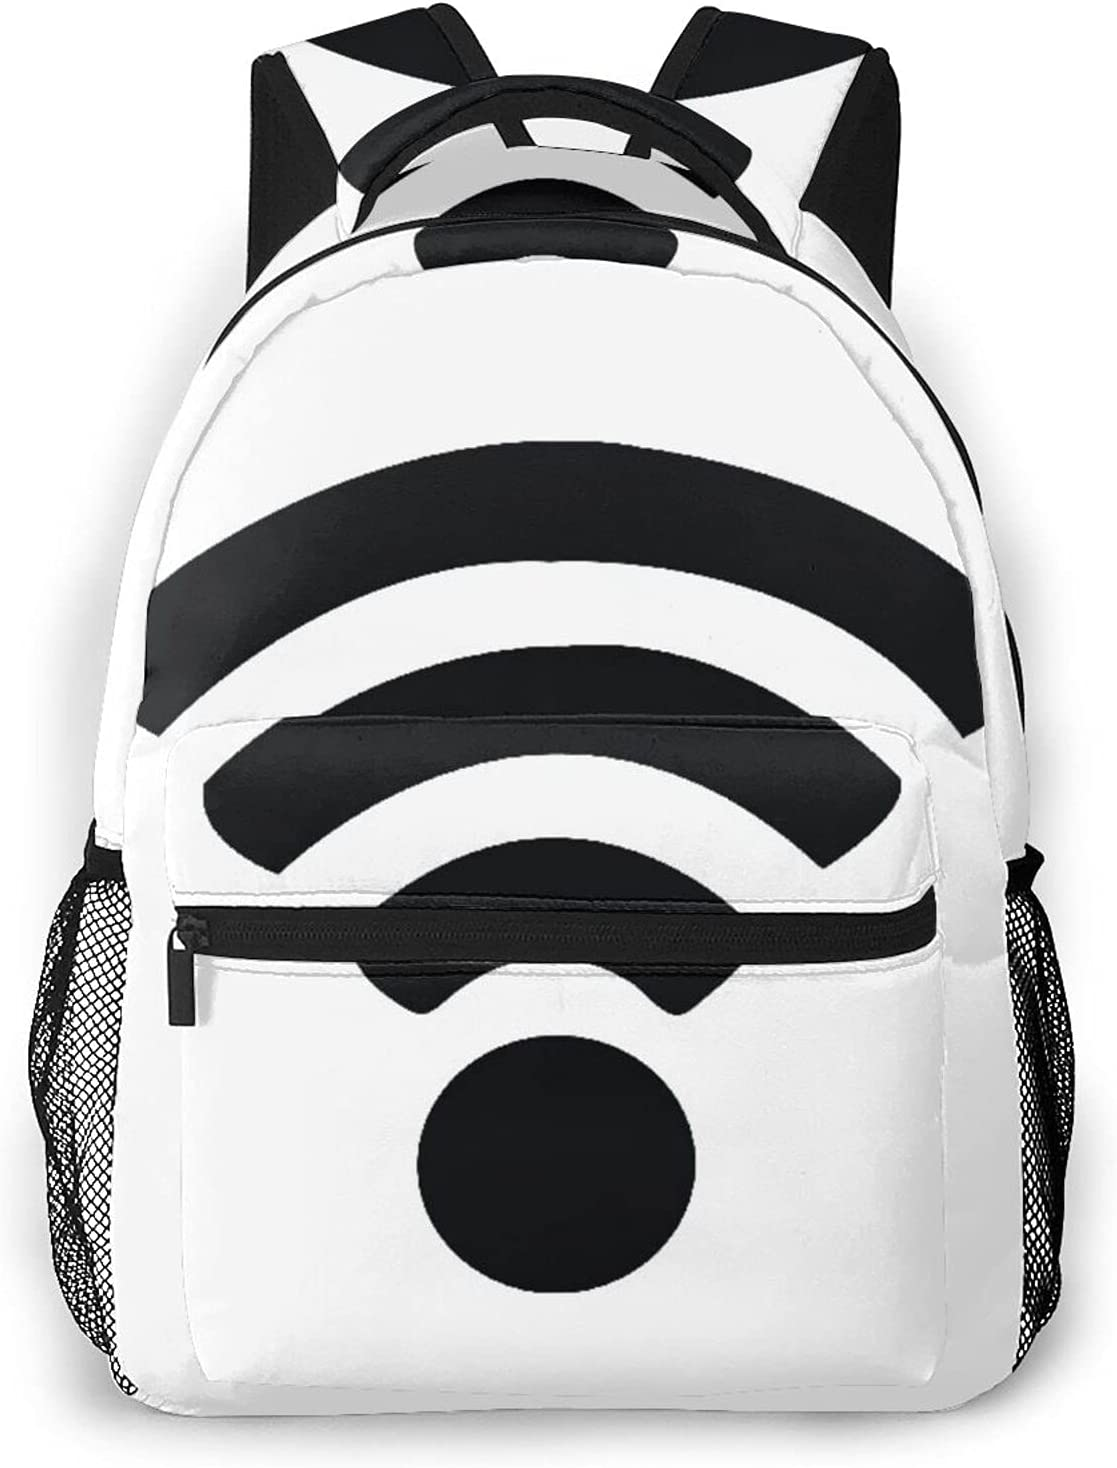 Multi leisure backpack Max 62% OFF Connect Remote Wireless Acc Internet unisex WiFi